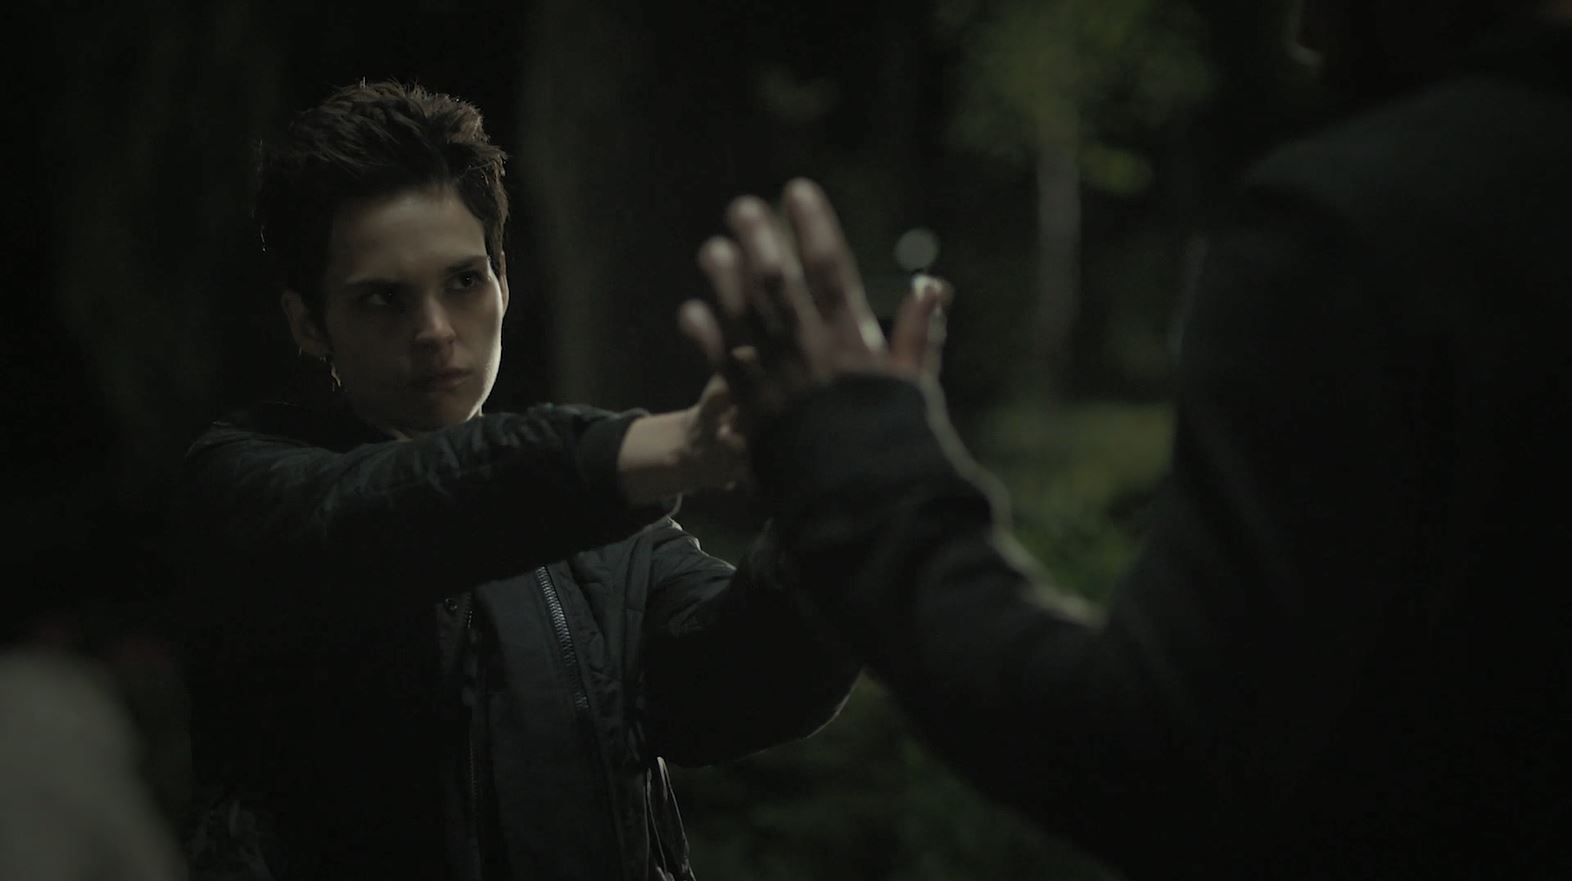 Sara Serraiocco as Baldwin Counterpart S02E08 In From The Cold Review